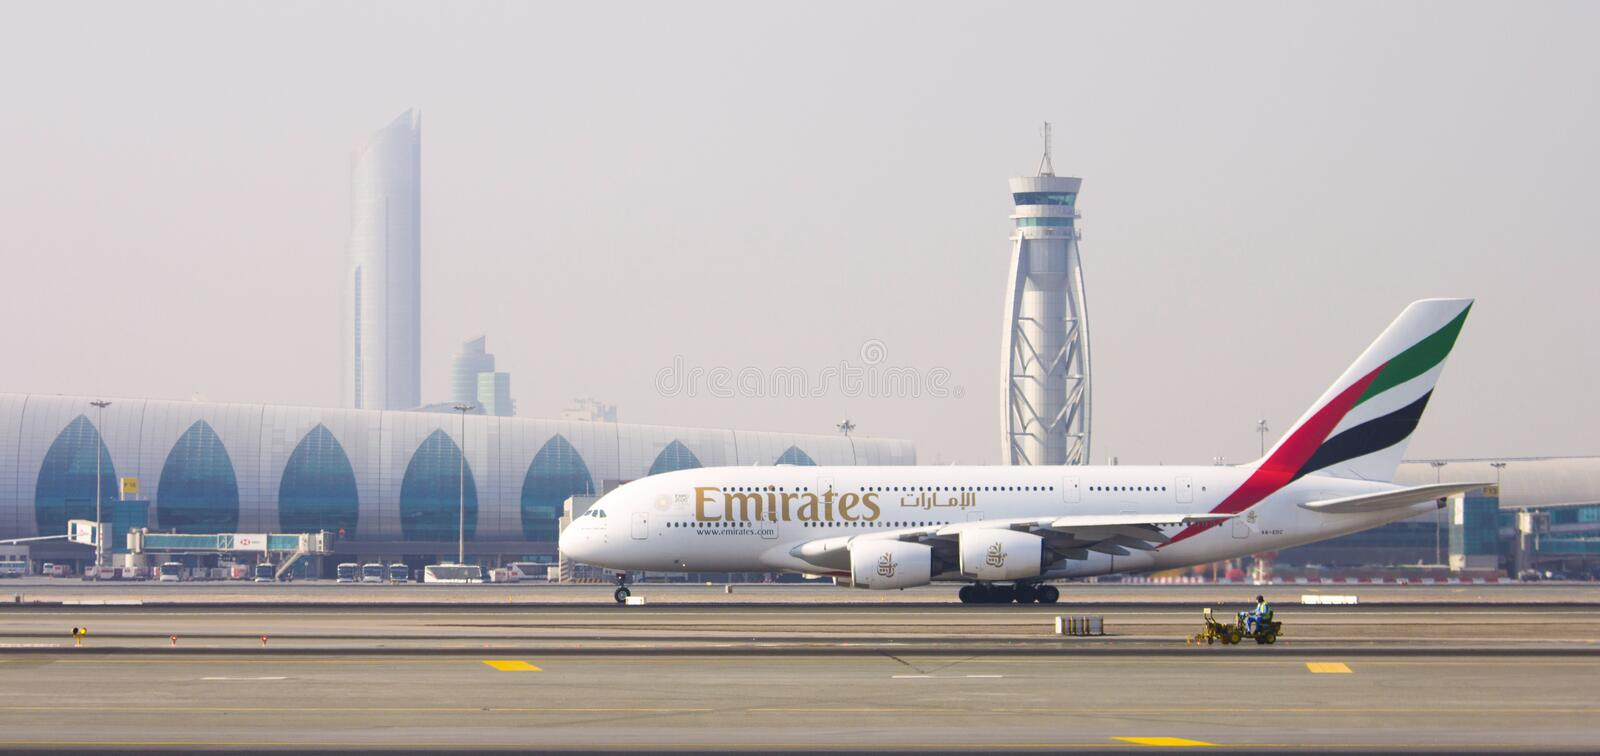 Dubai - October 23: Emirates Airplane at Dubai Airport on October 23, 2018 in Dubai, U.A.E. Dubai airport is home port for Emirate. S Airlines and one of the royalty free stock photo